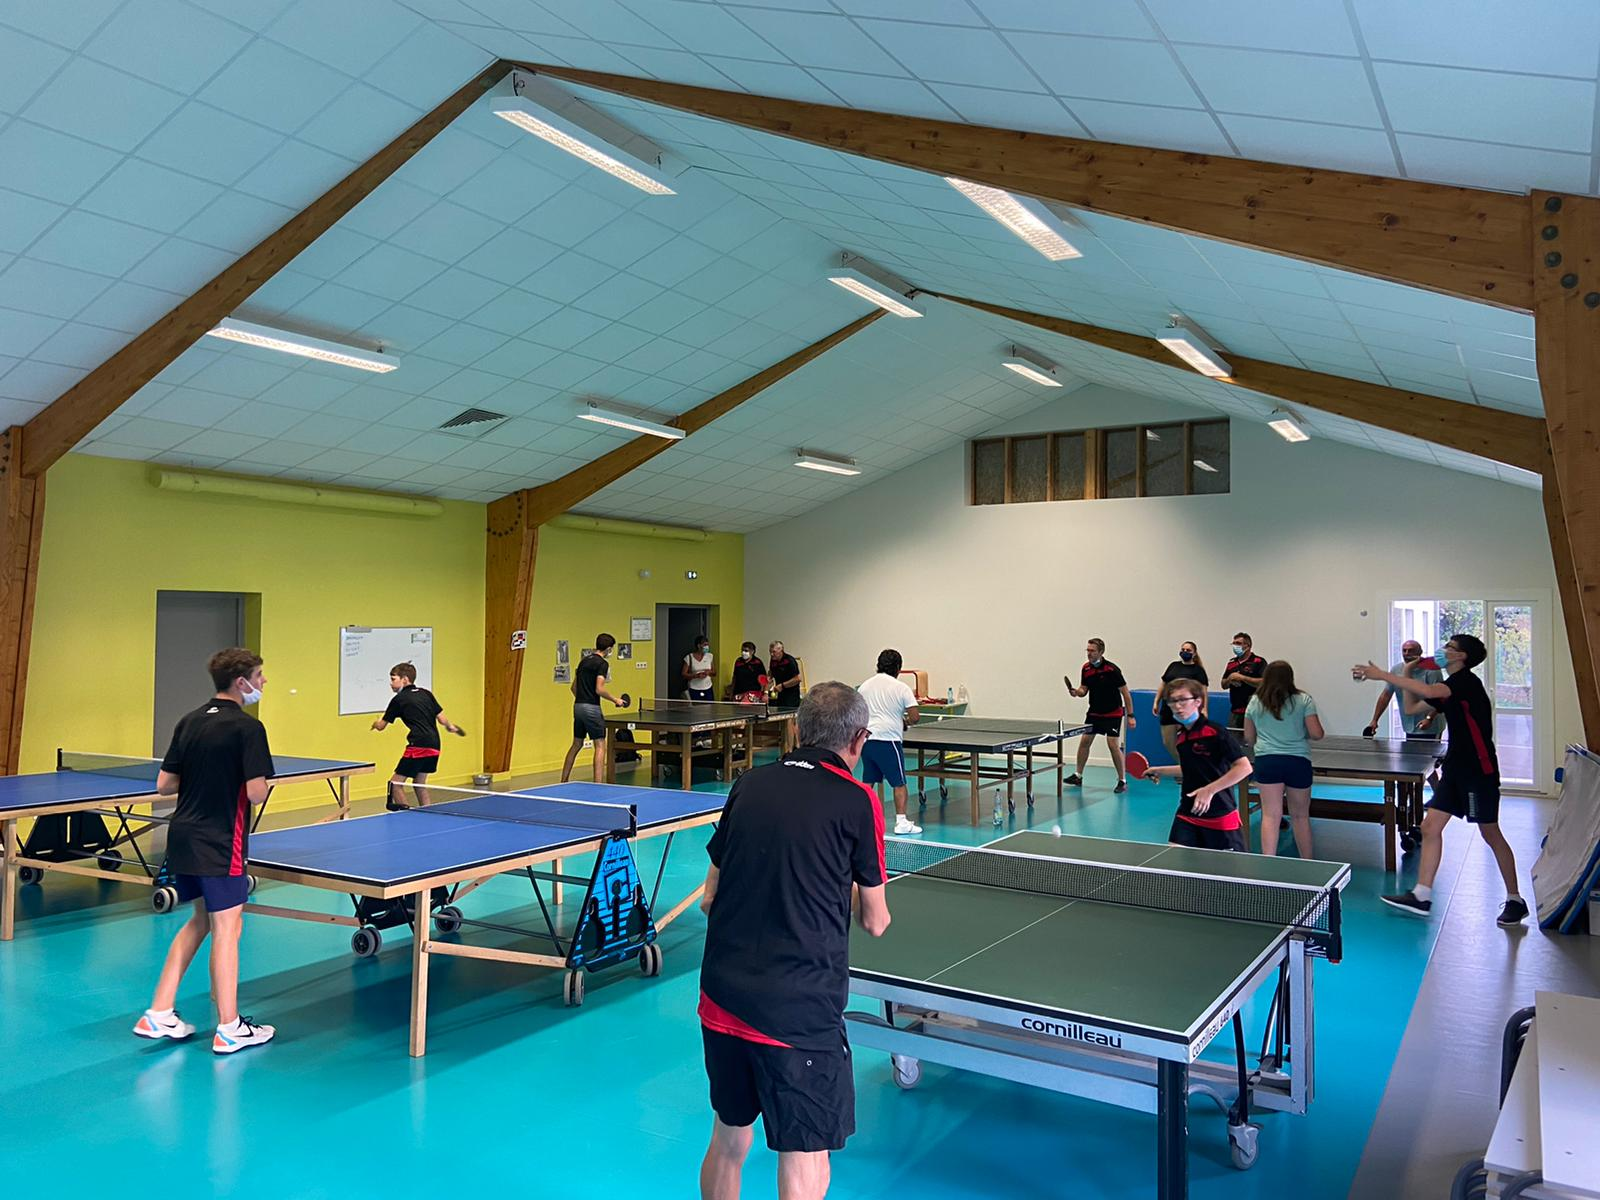 Ping Pong reprise cours sept 2020.jpg